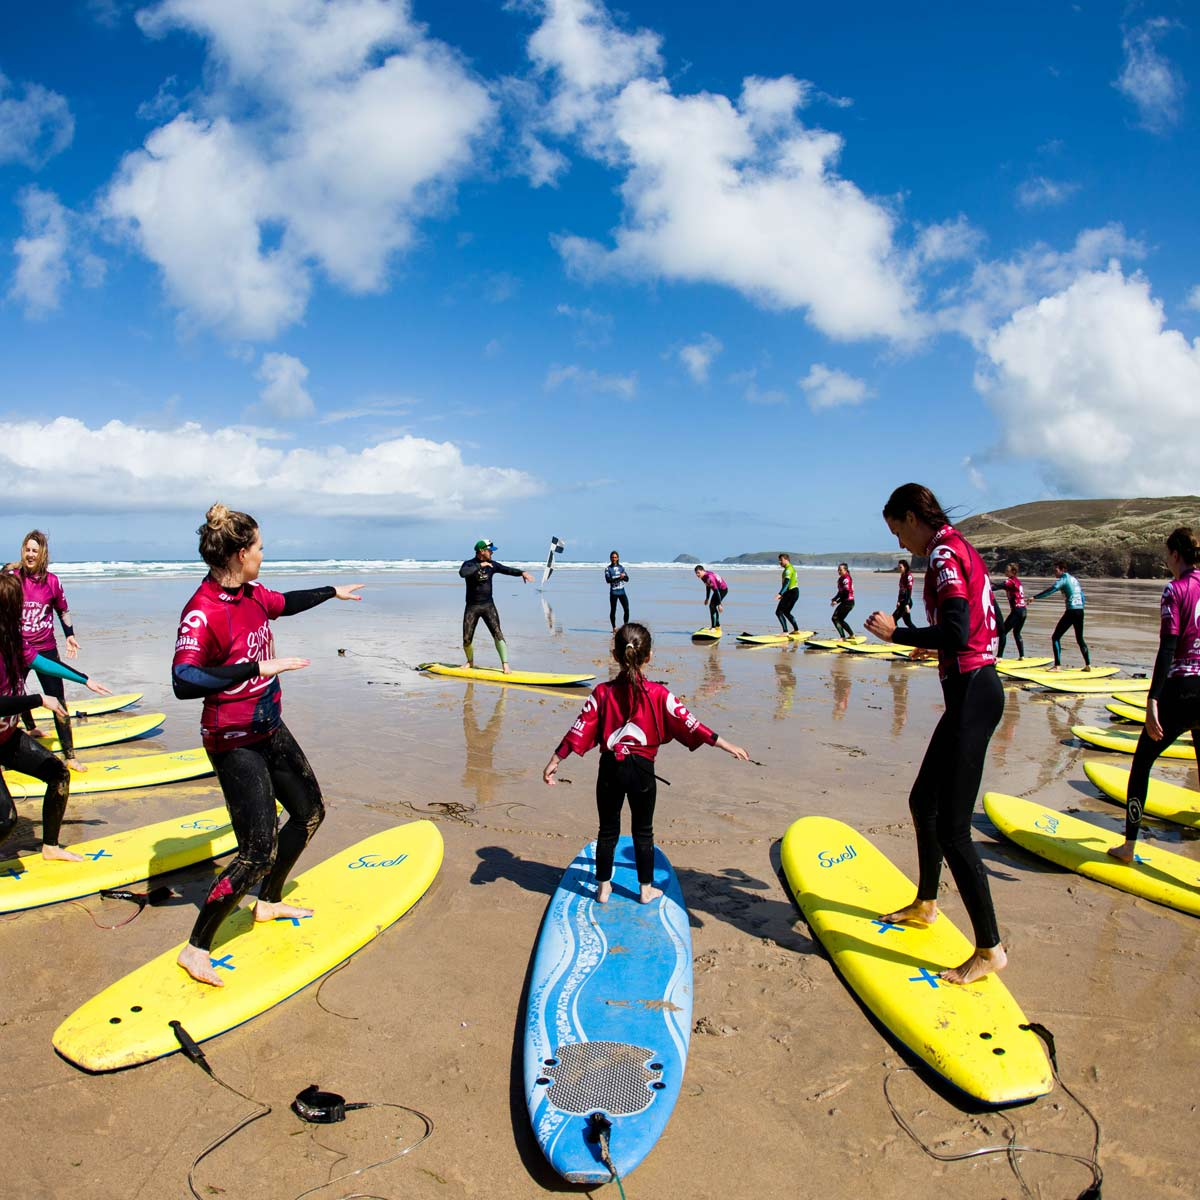 Groups of young people learning to surf on the beach